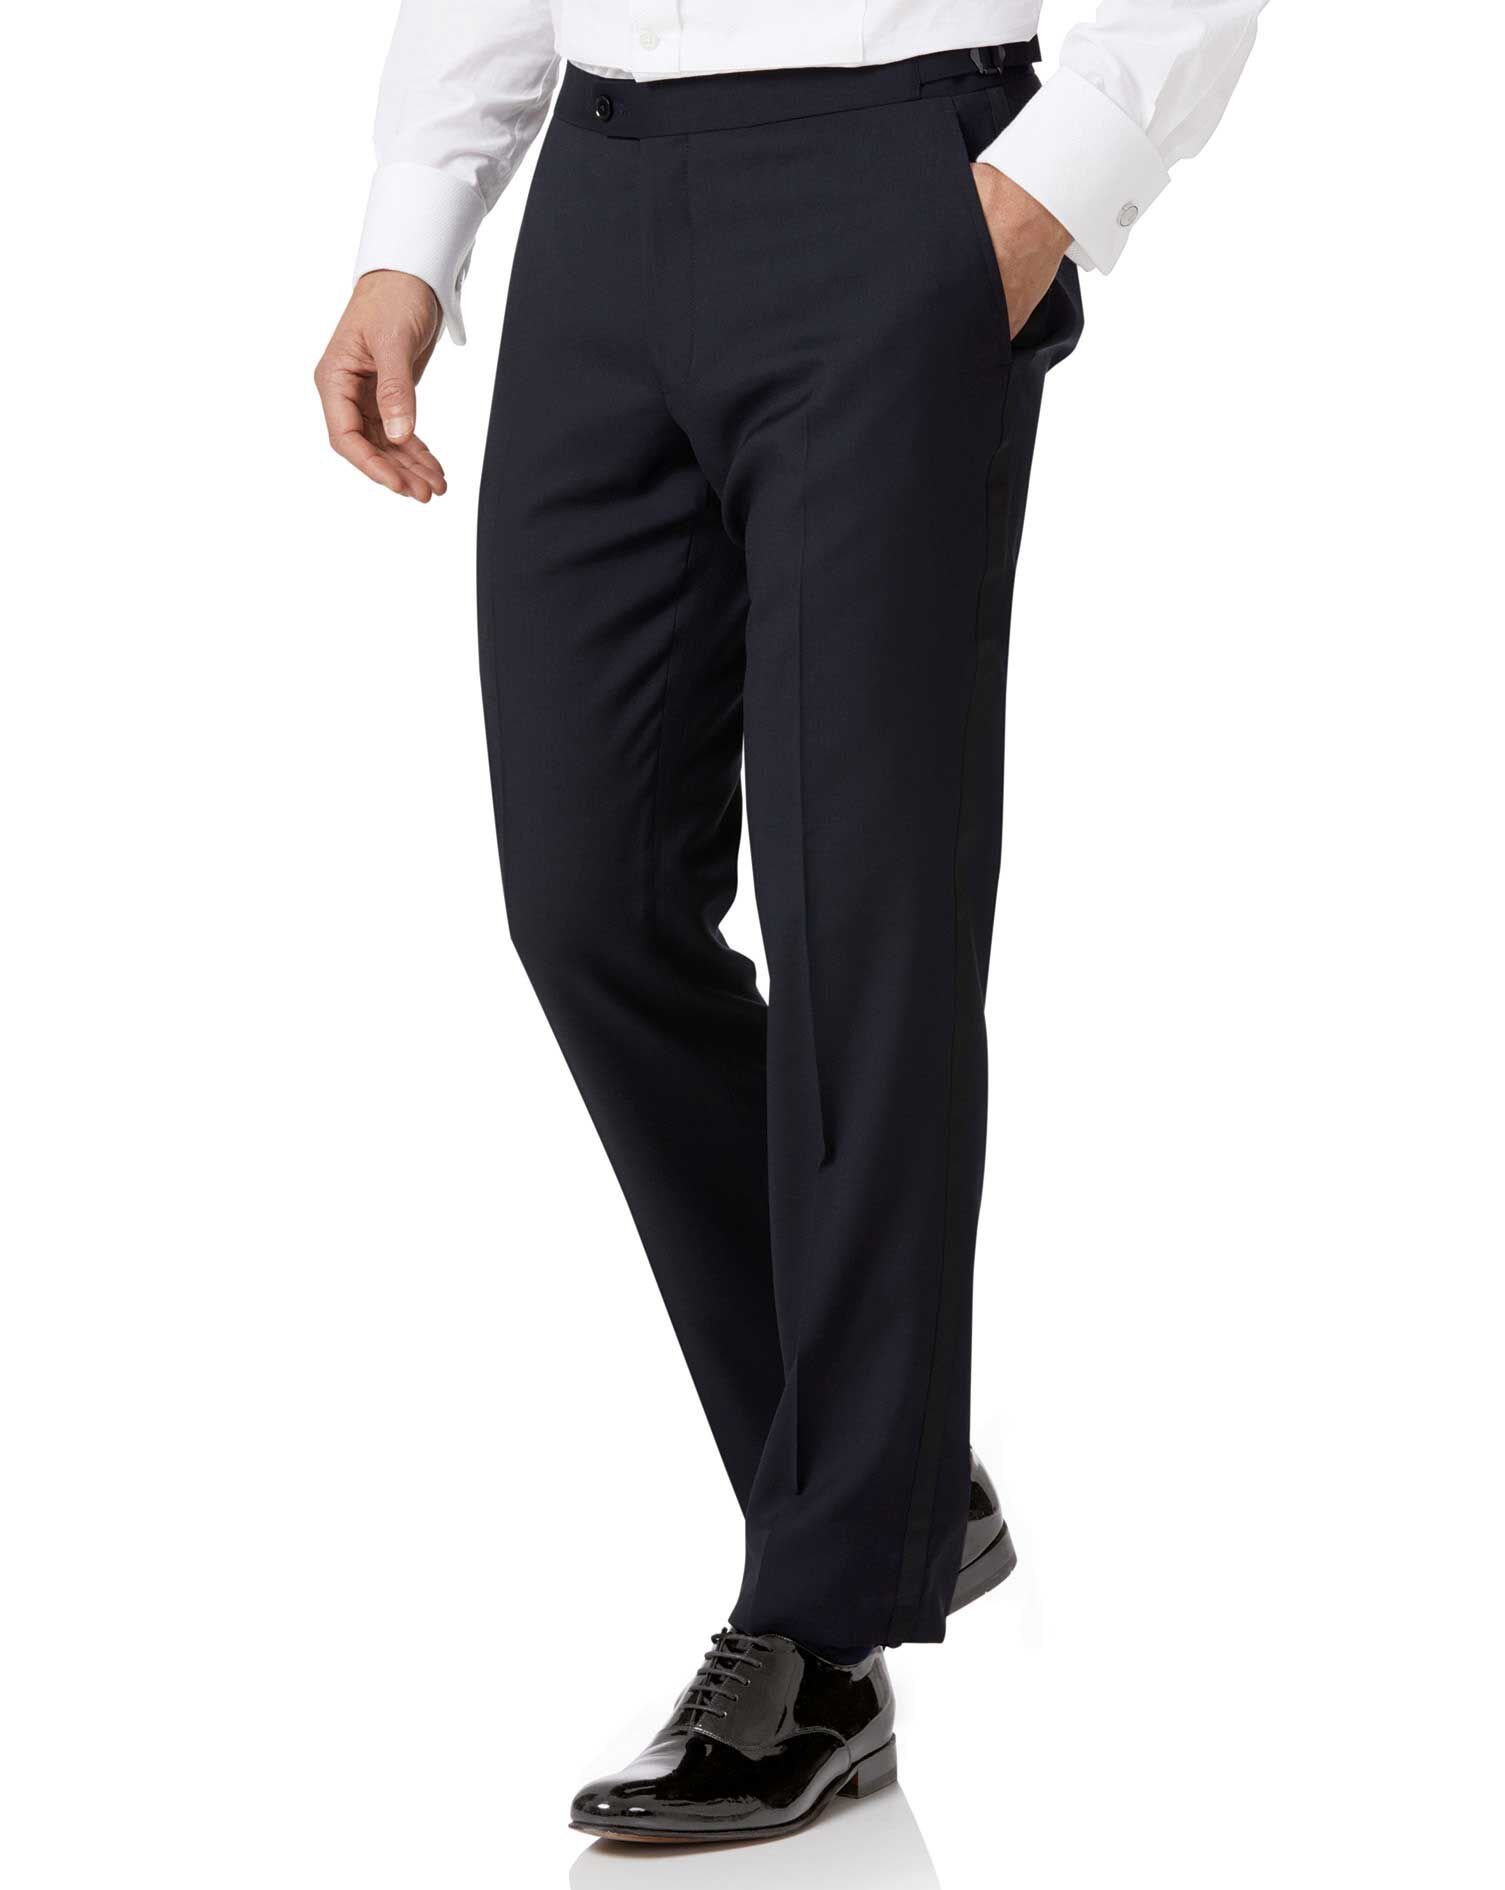 Navy Slim Fit Tuxedo Trousers Size W32 L32 by Charles Tyrwhitt